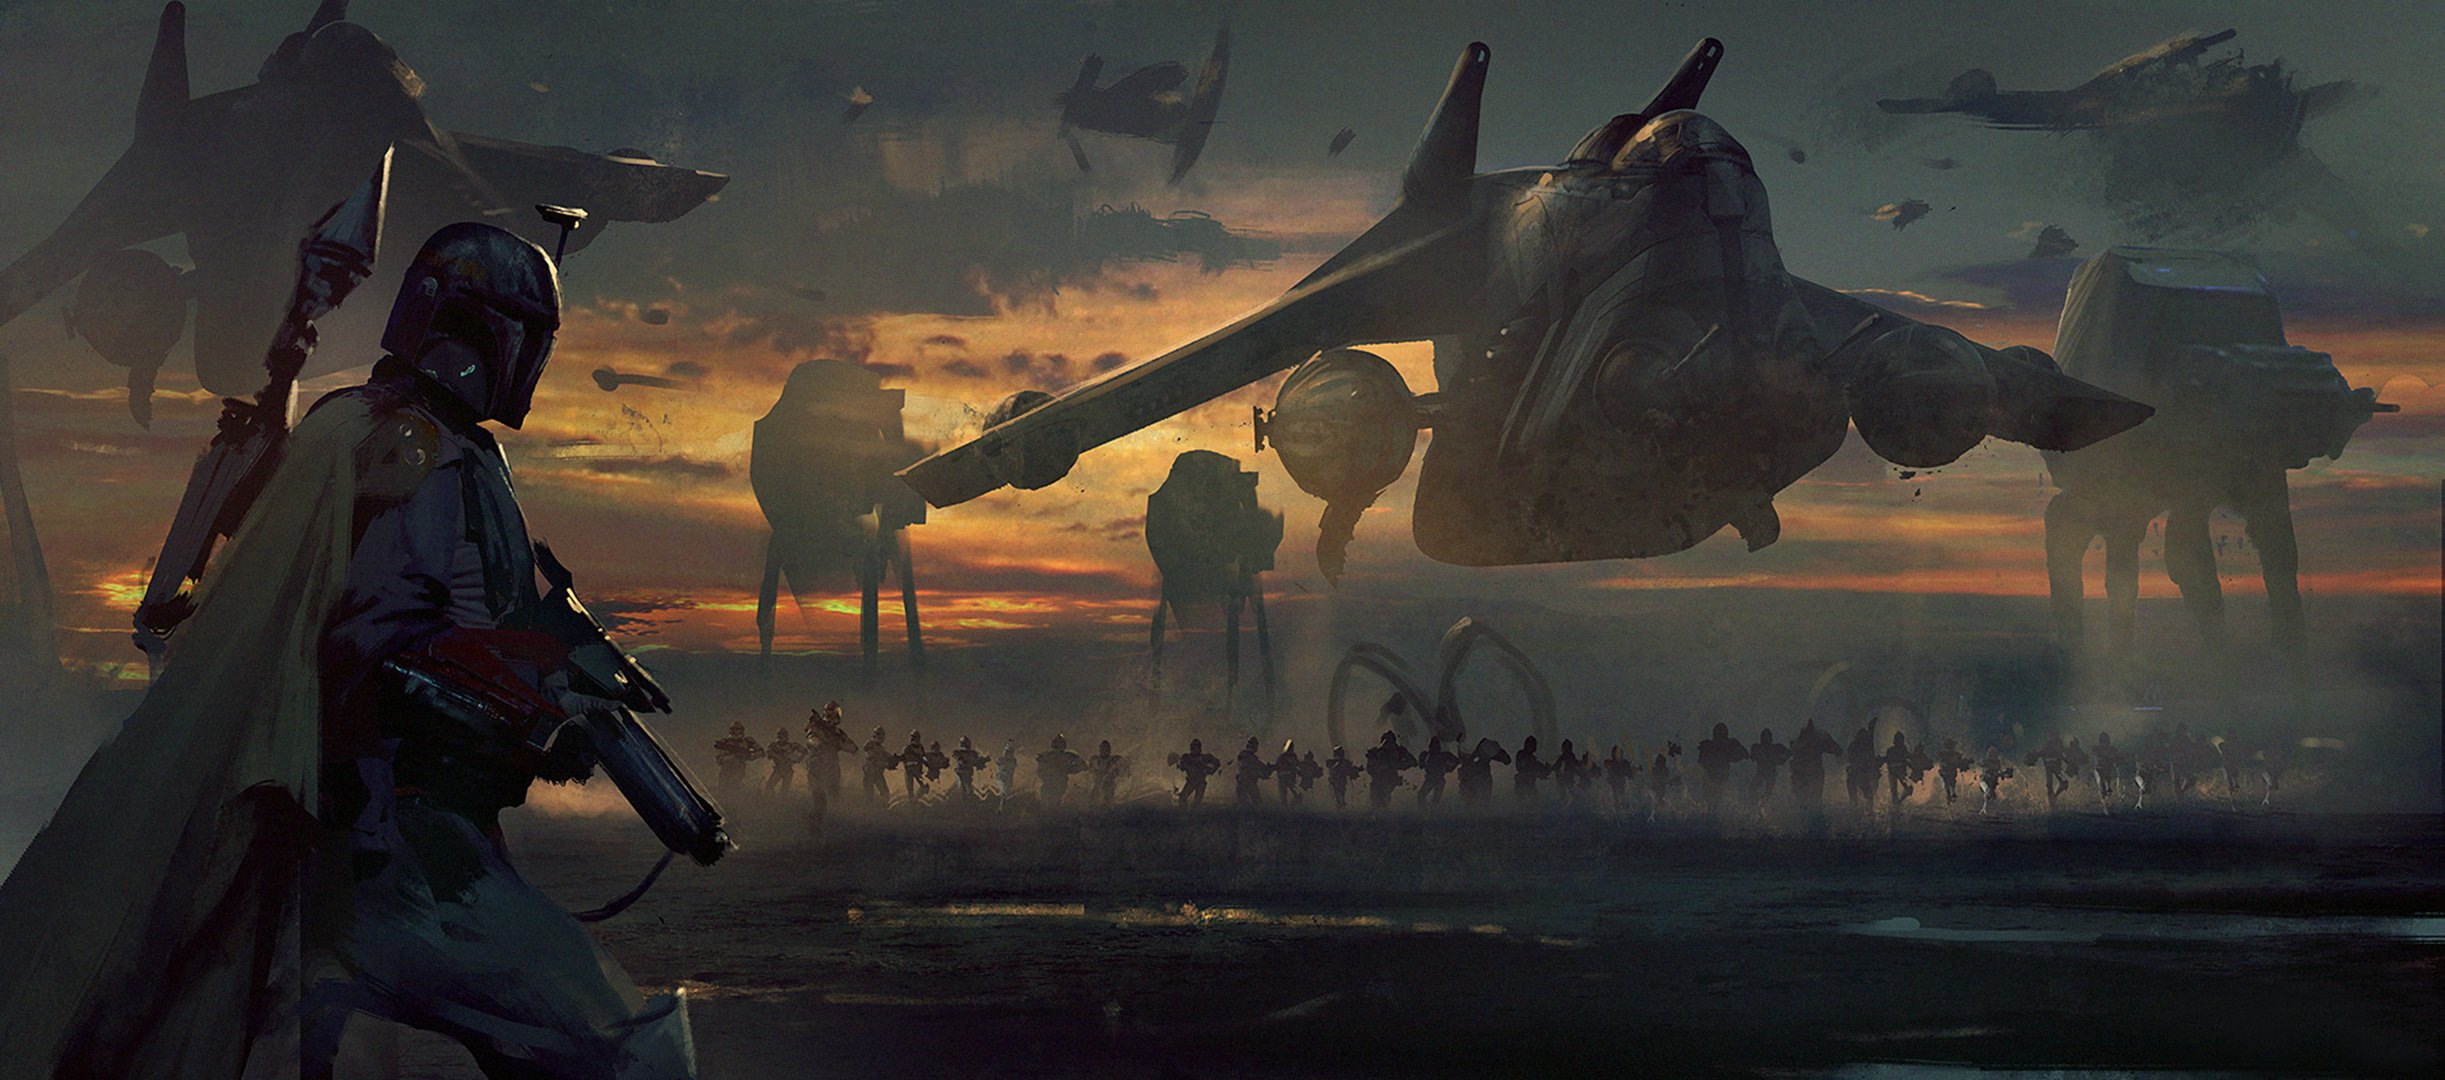 Star Wars Art Wallpaper Wallpapersafari